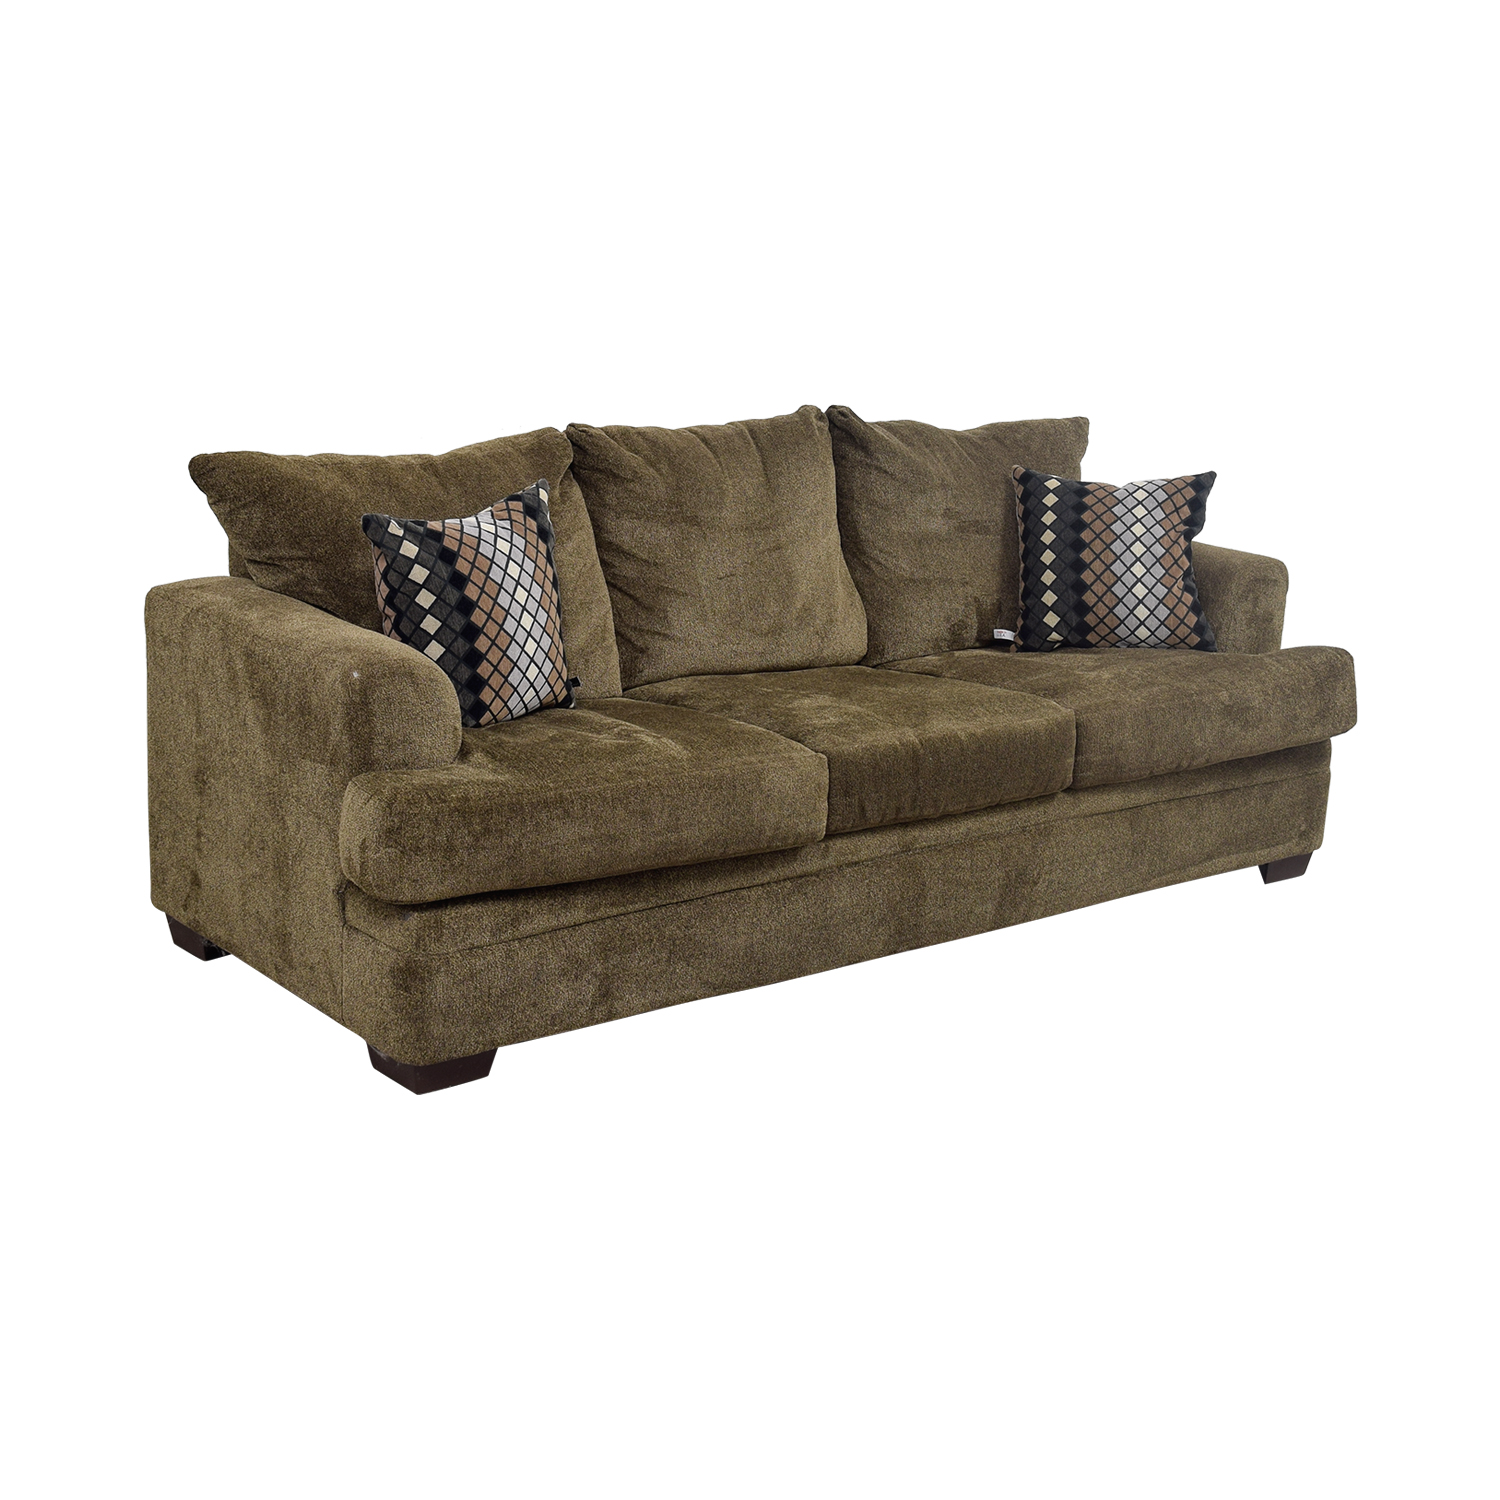 78 off three cushion tan sofa sofas